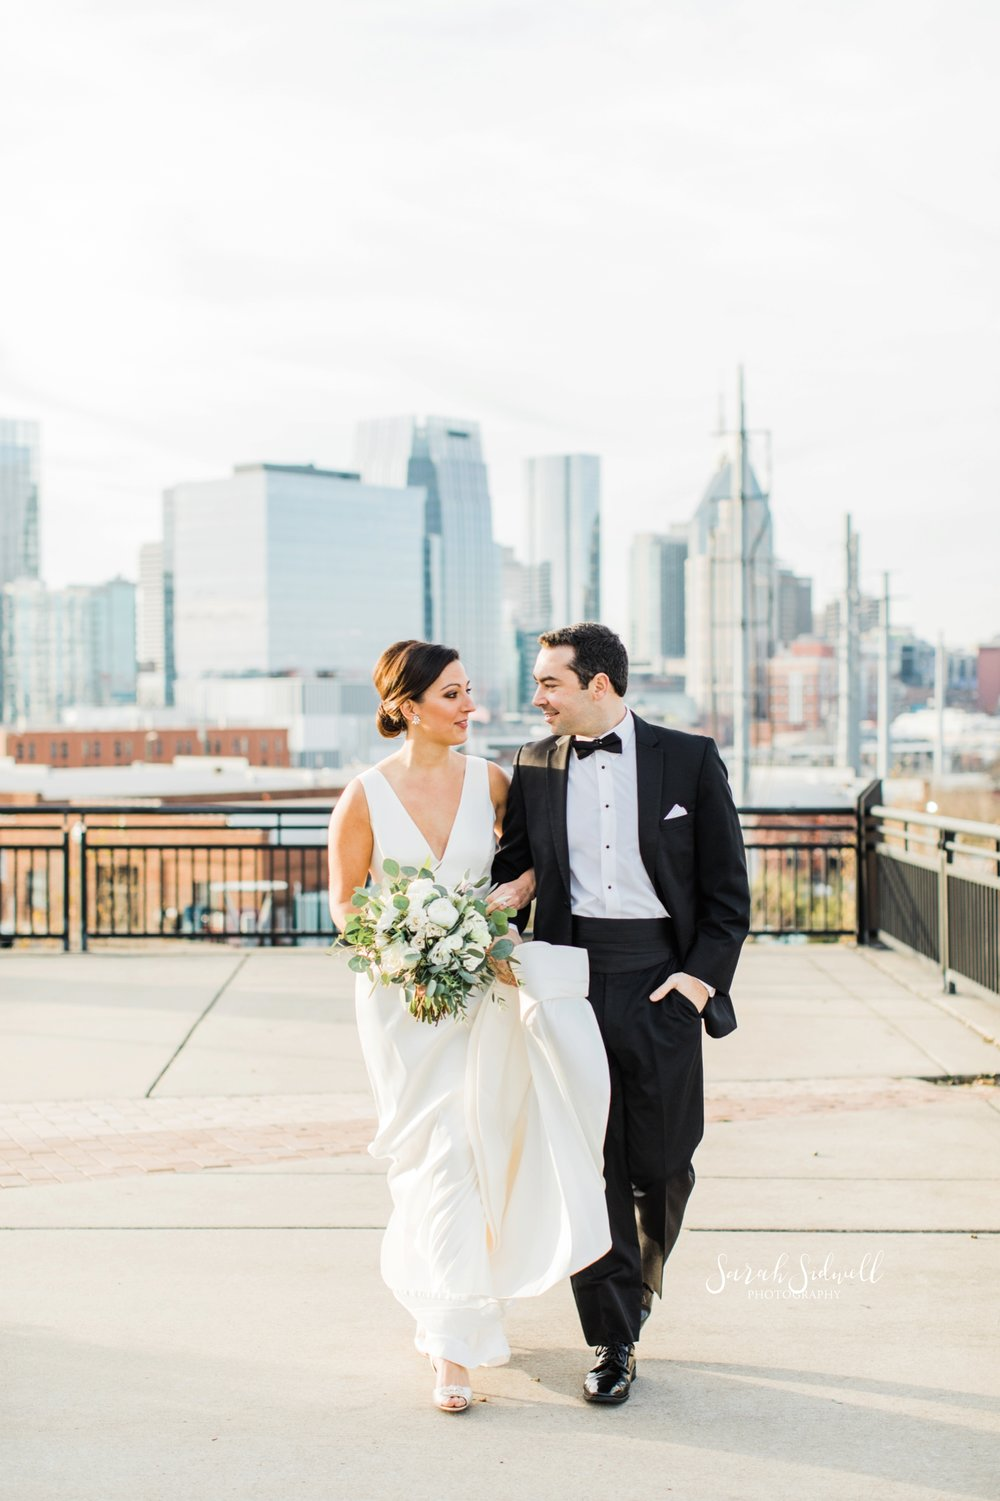 A bride and groom walk together | Sarah Sidwell Photography | The Bell Tower